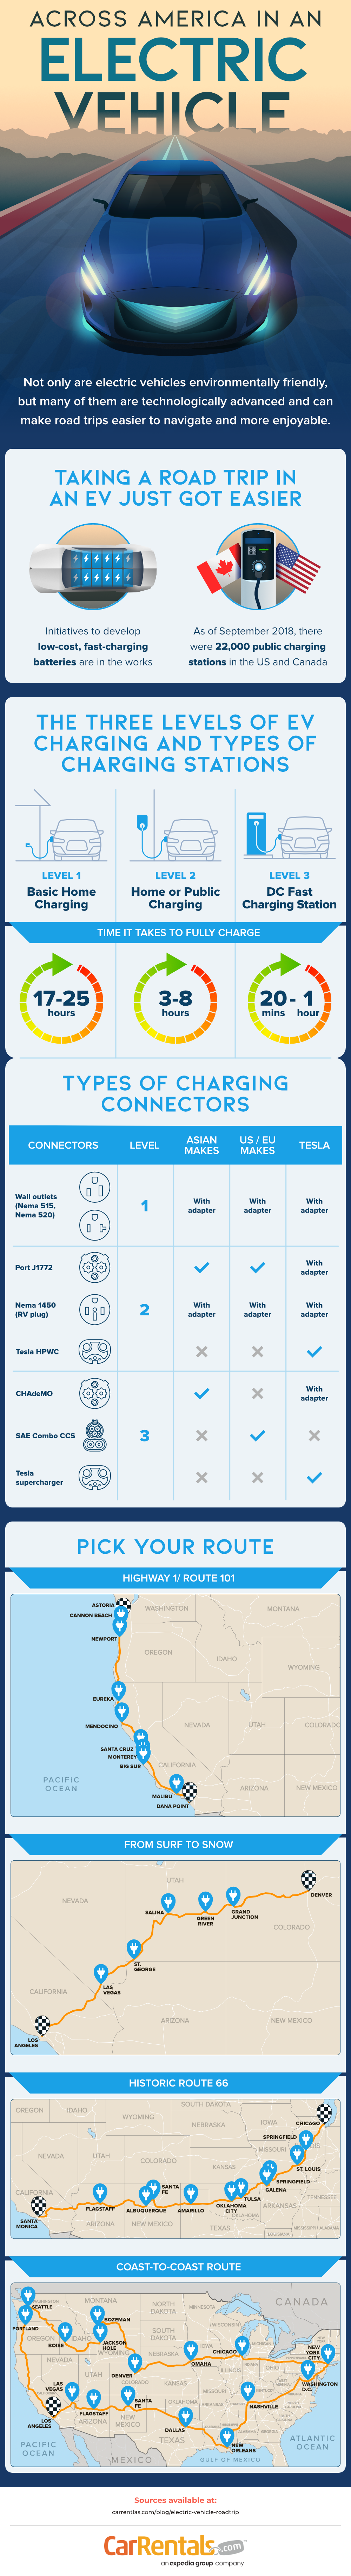 Across USA in an Electric Vehicle [Infographic]   ecogreenlove